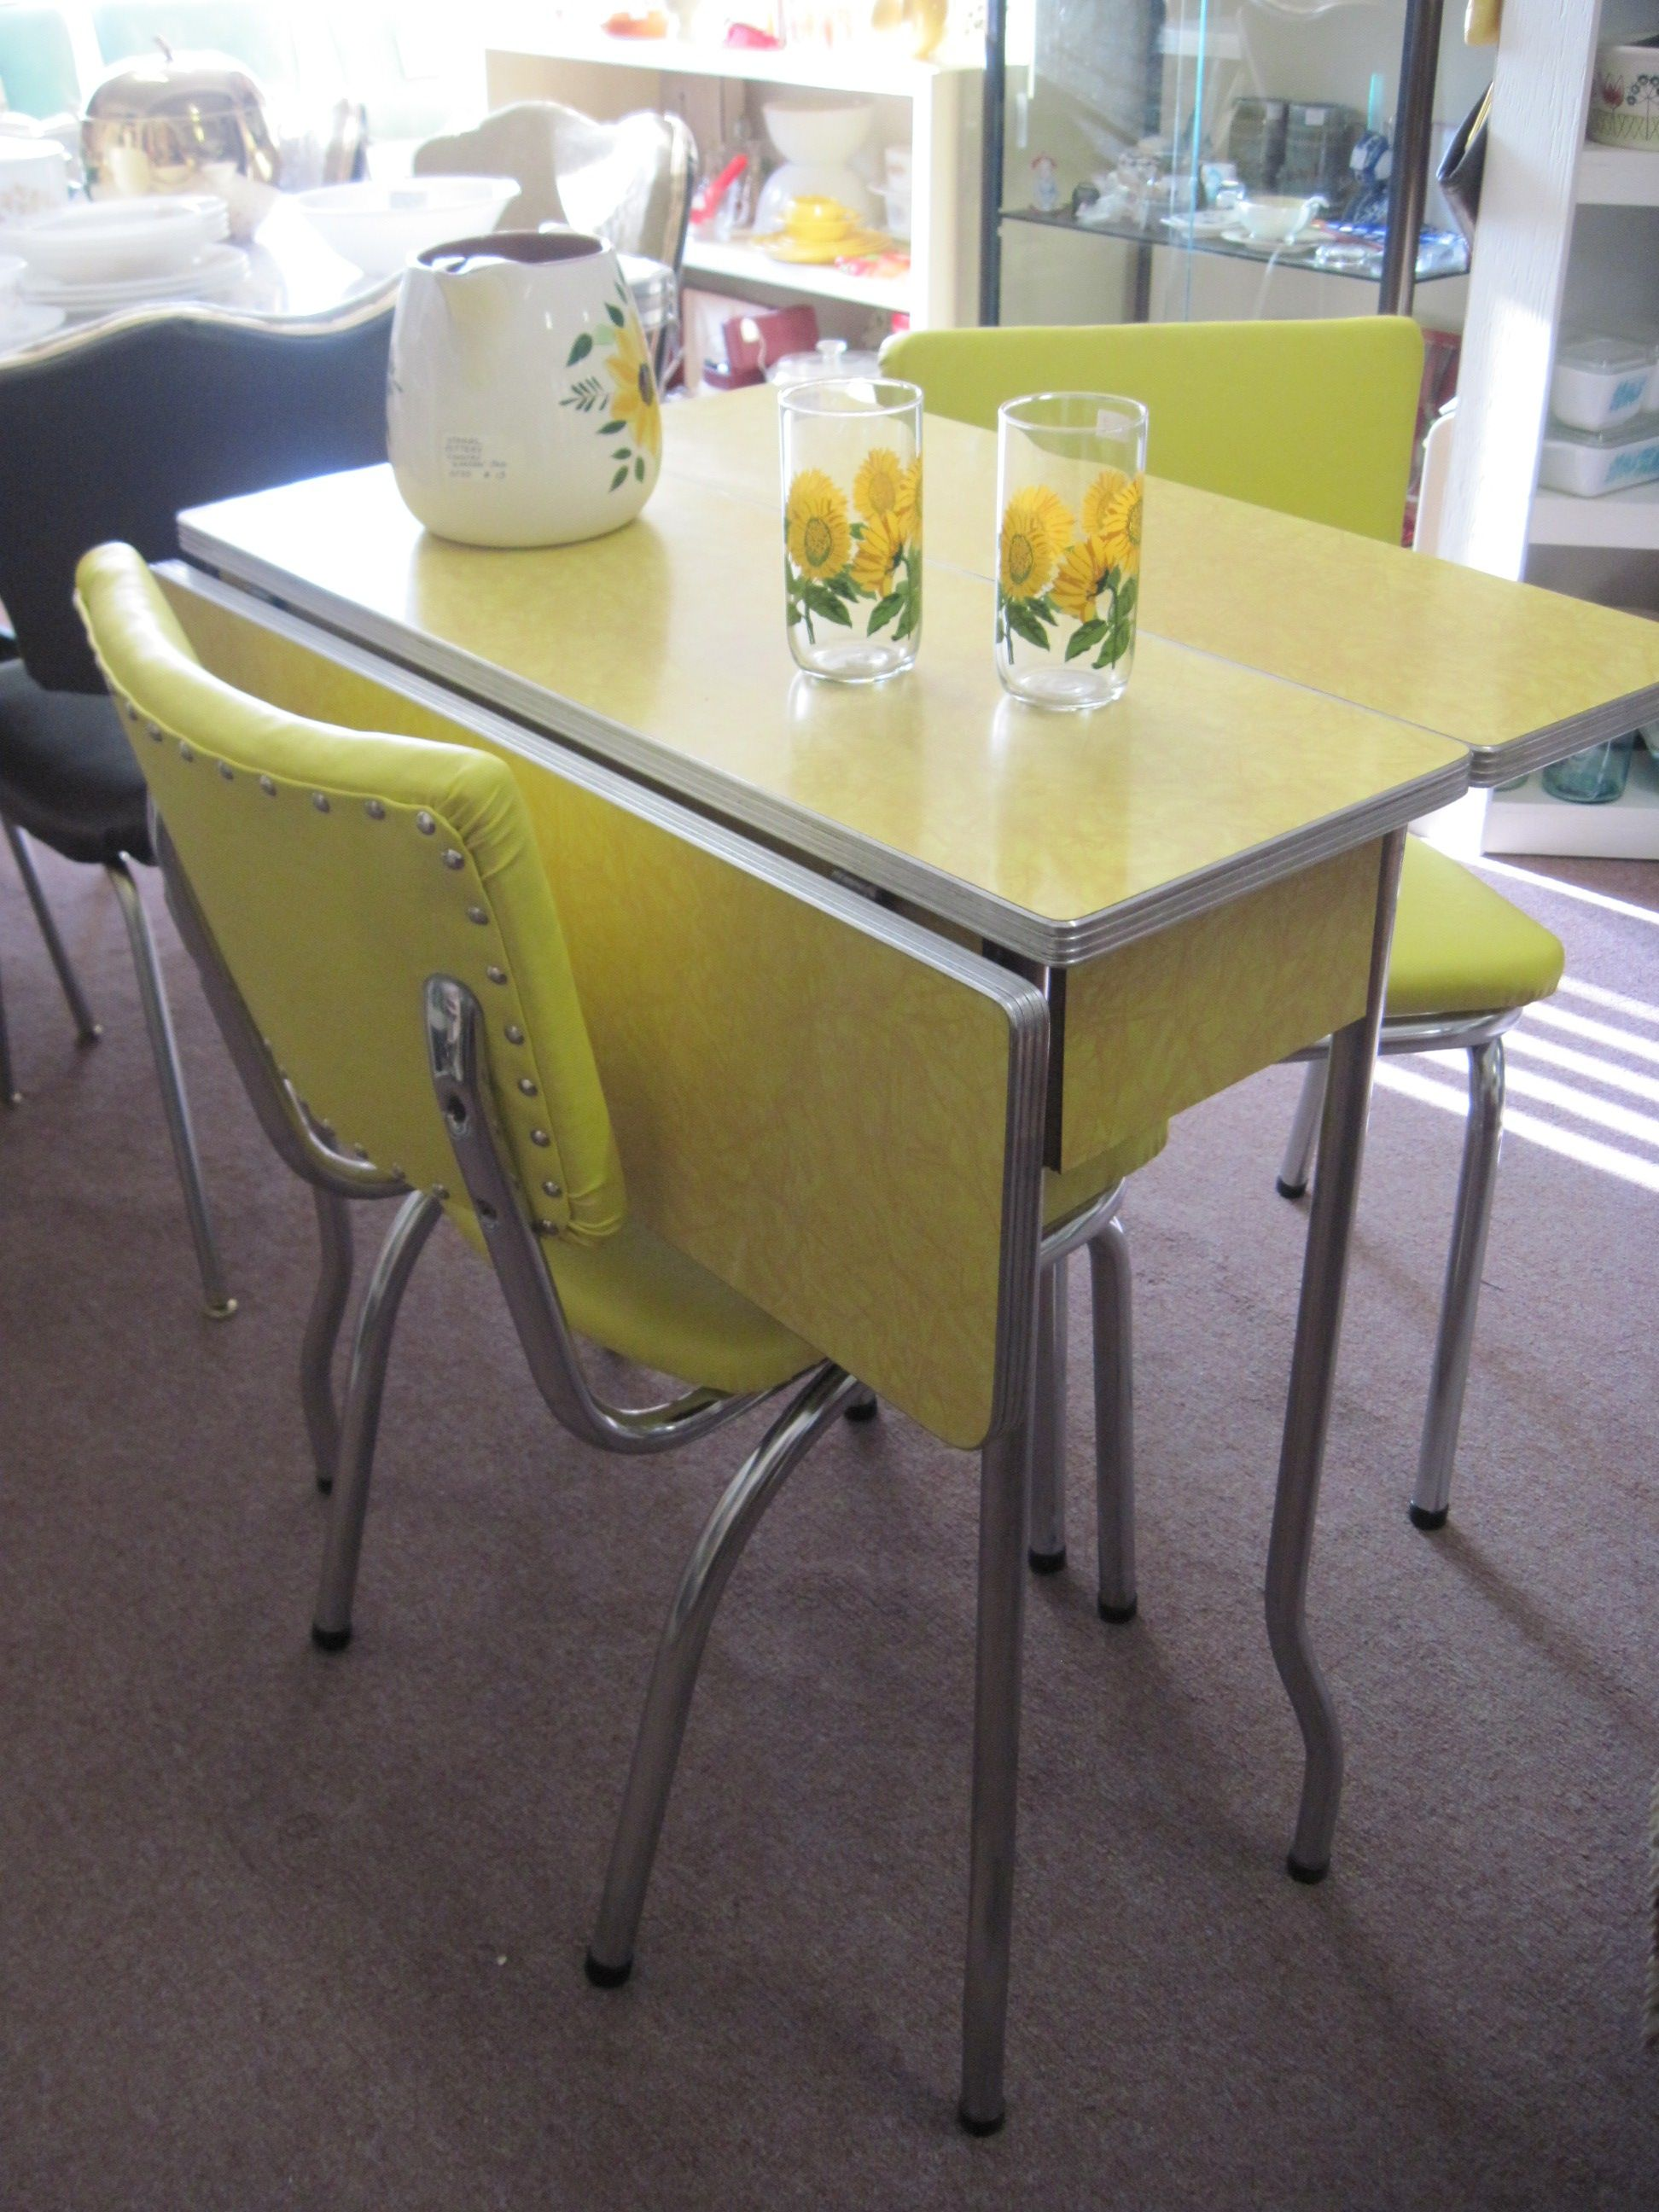 1950 formica table and chairs yellow 1950 s cracked ice formica